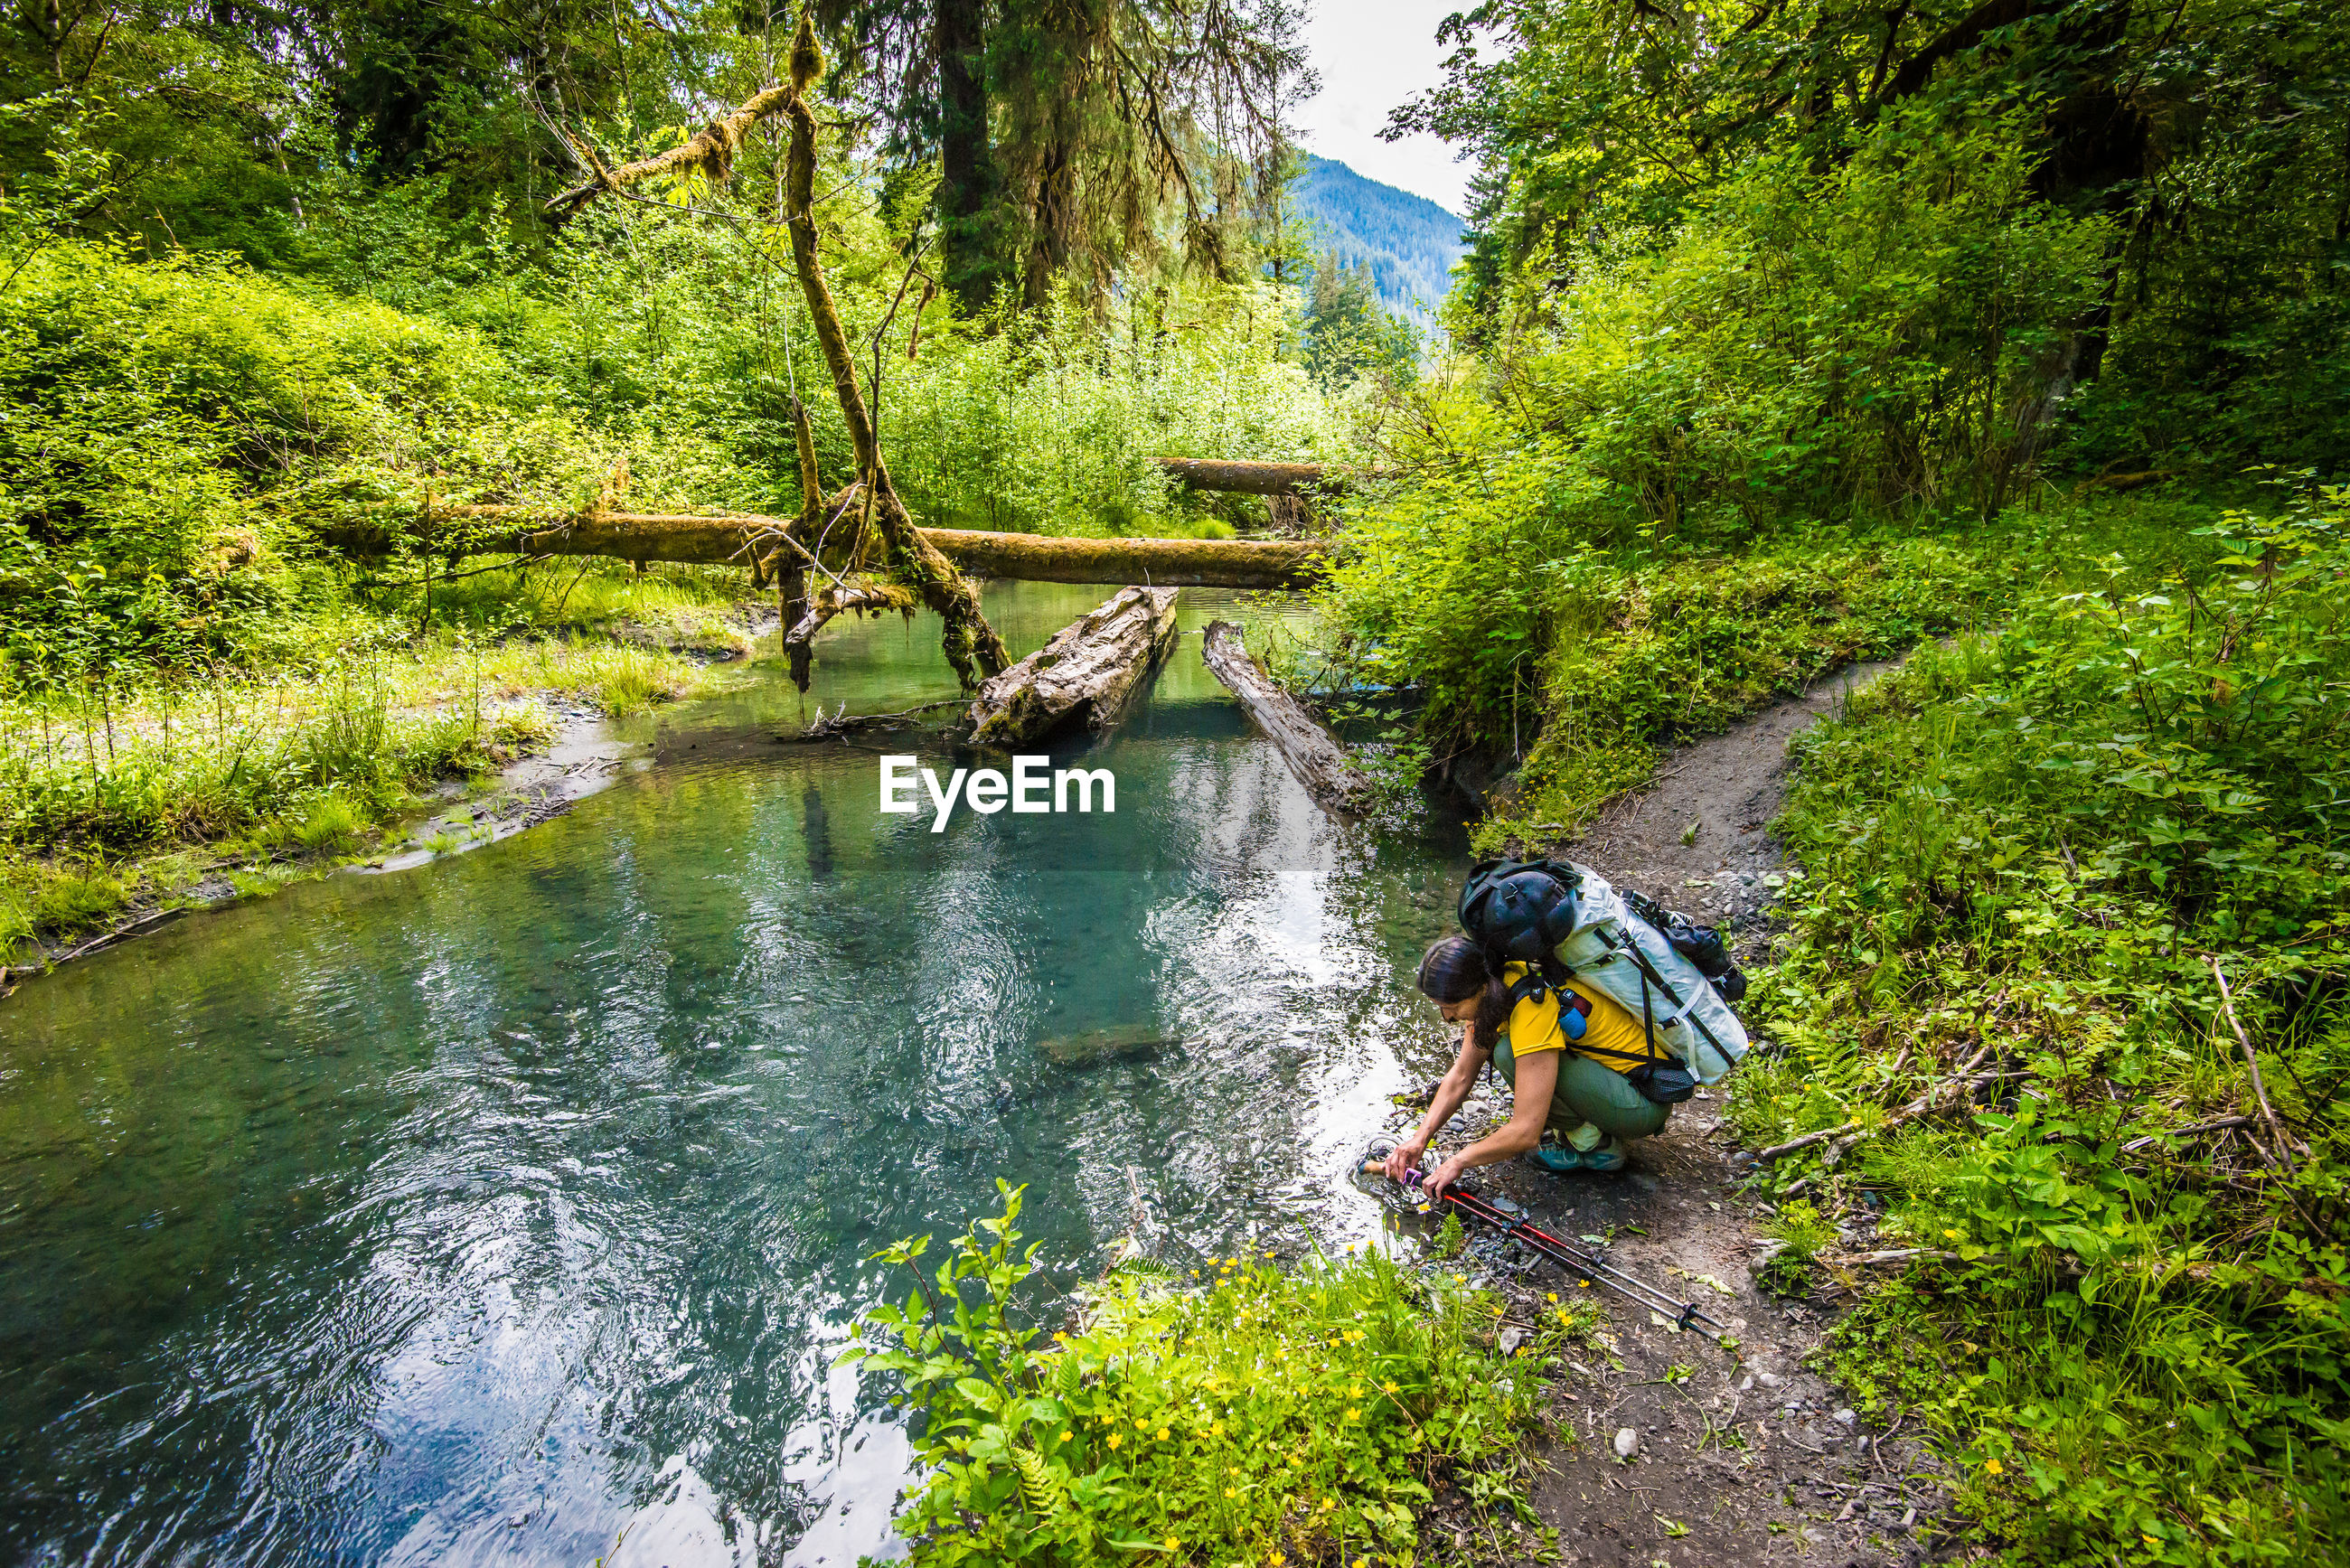 MAN SURFING ON RIVER IN FOREST